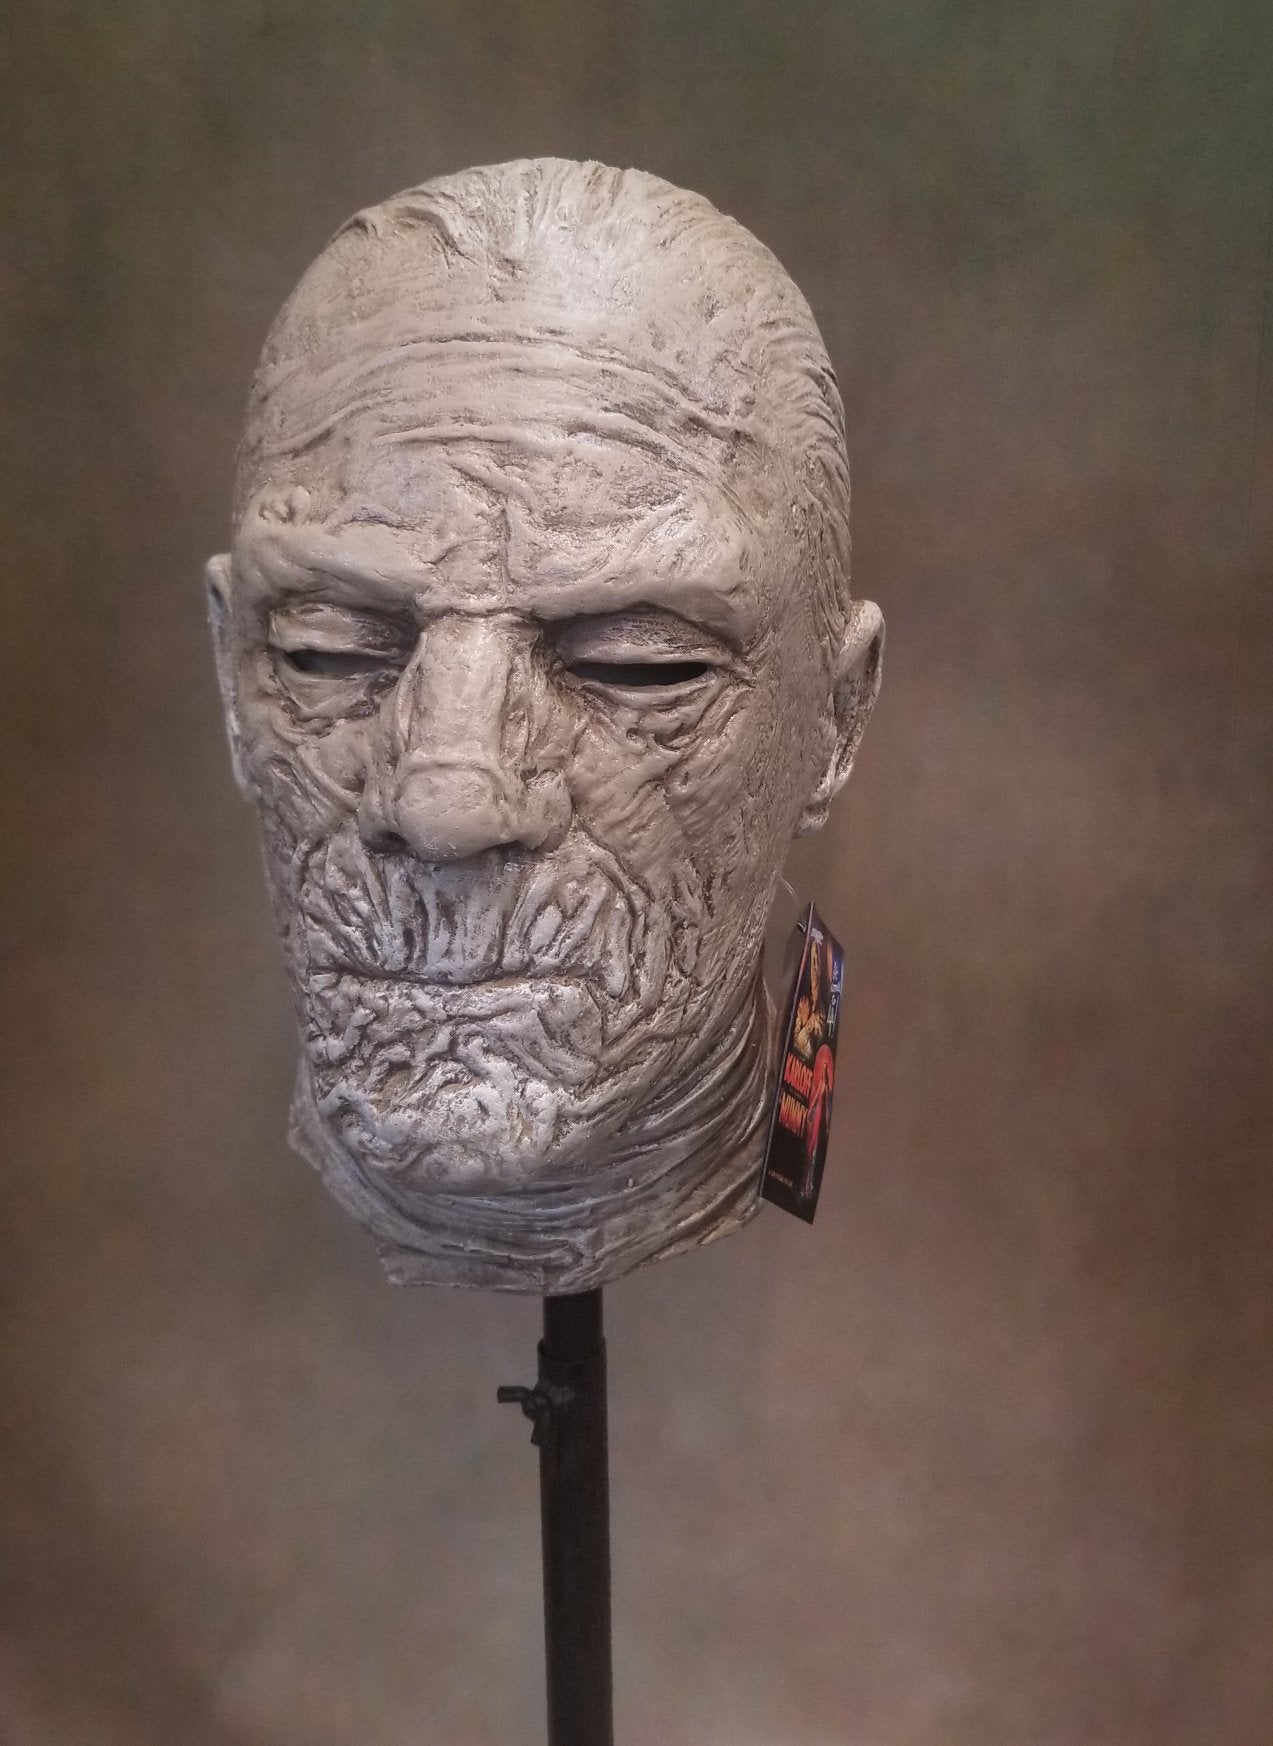 Boris Karloff The Mummy Mask